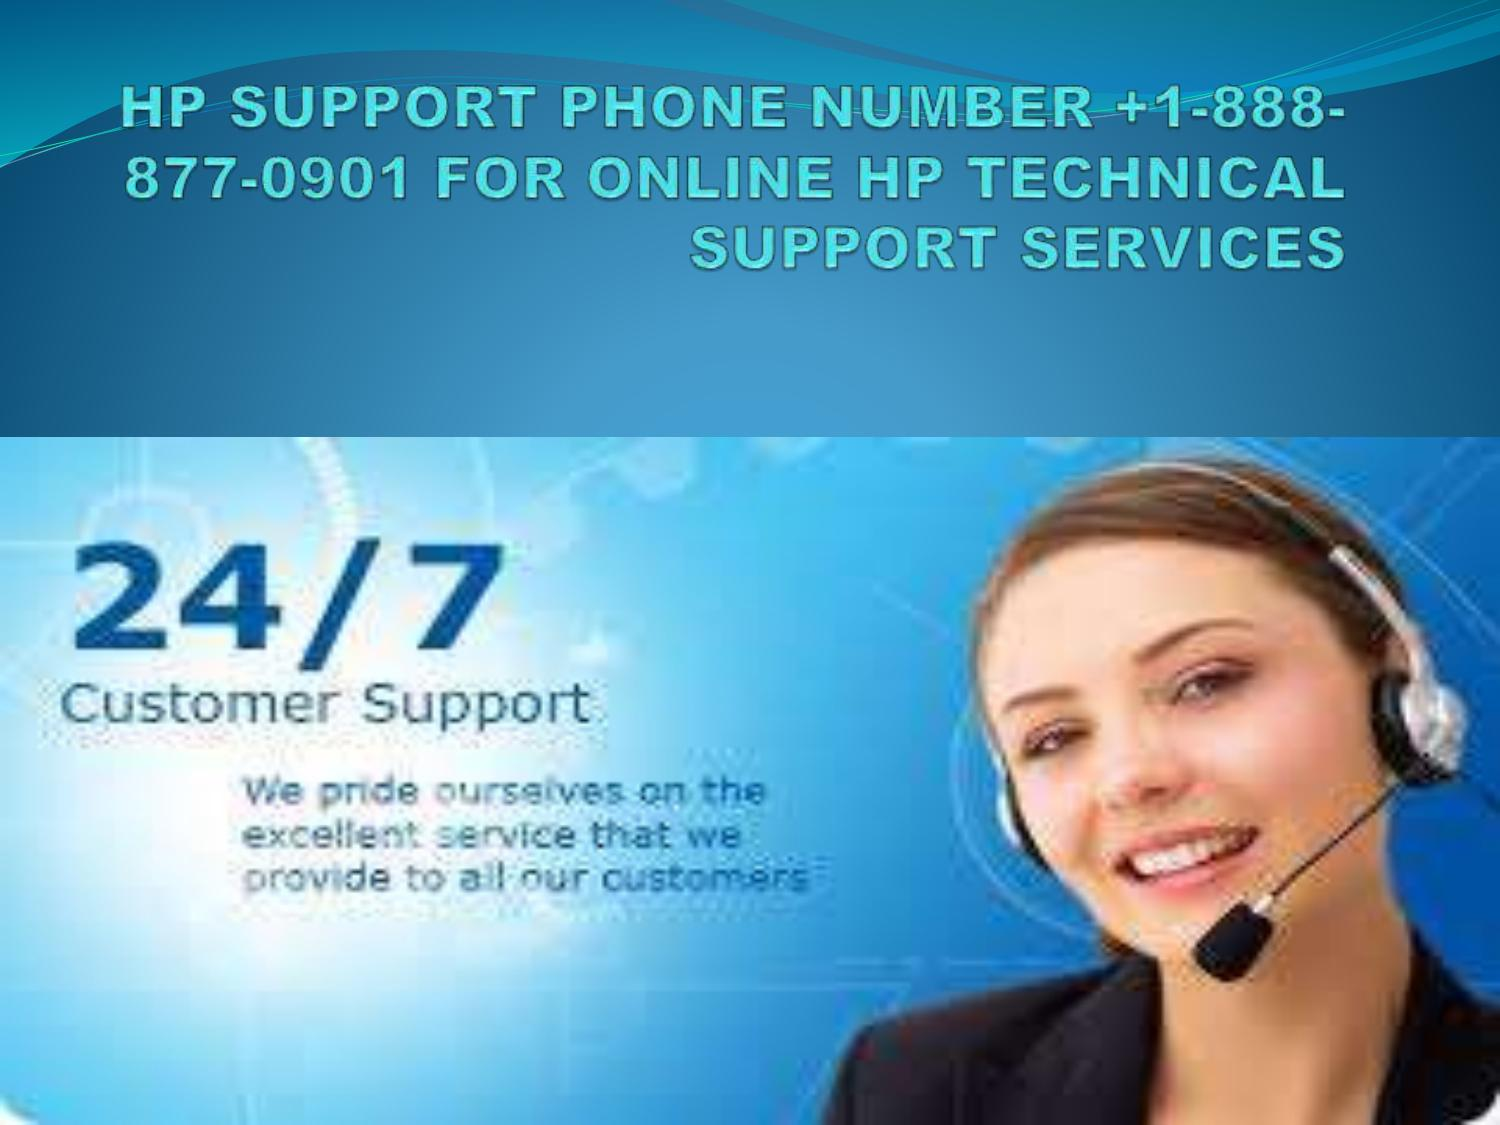 How to Fix Error Code 49 4c02? Call +1-888-877-0901 Toll